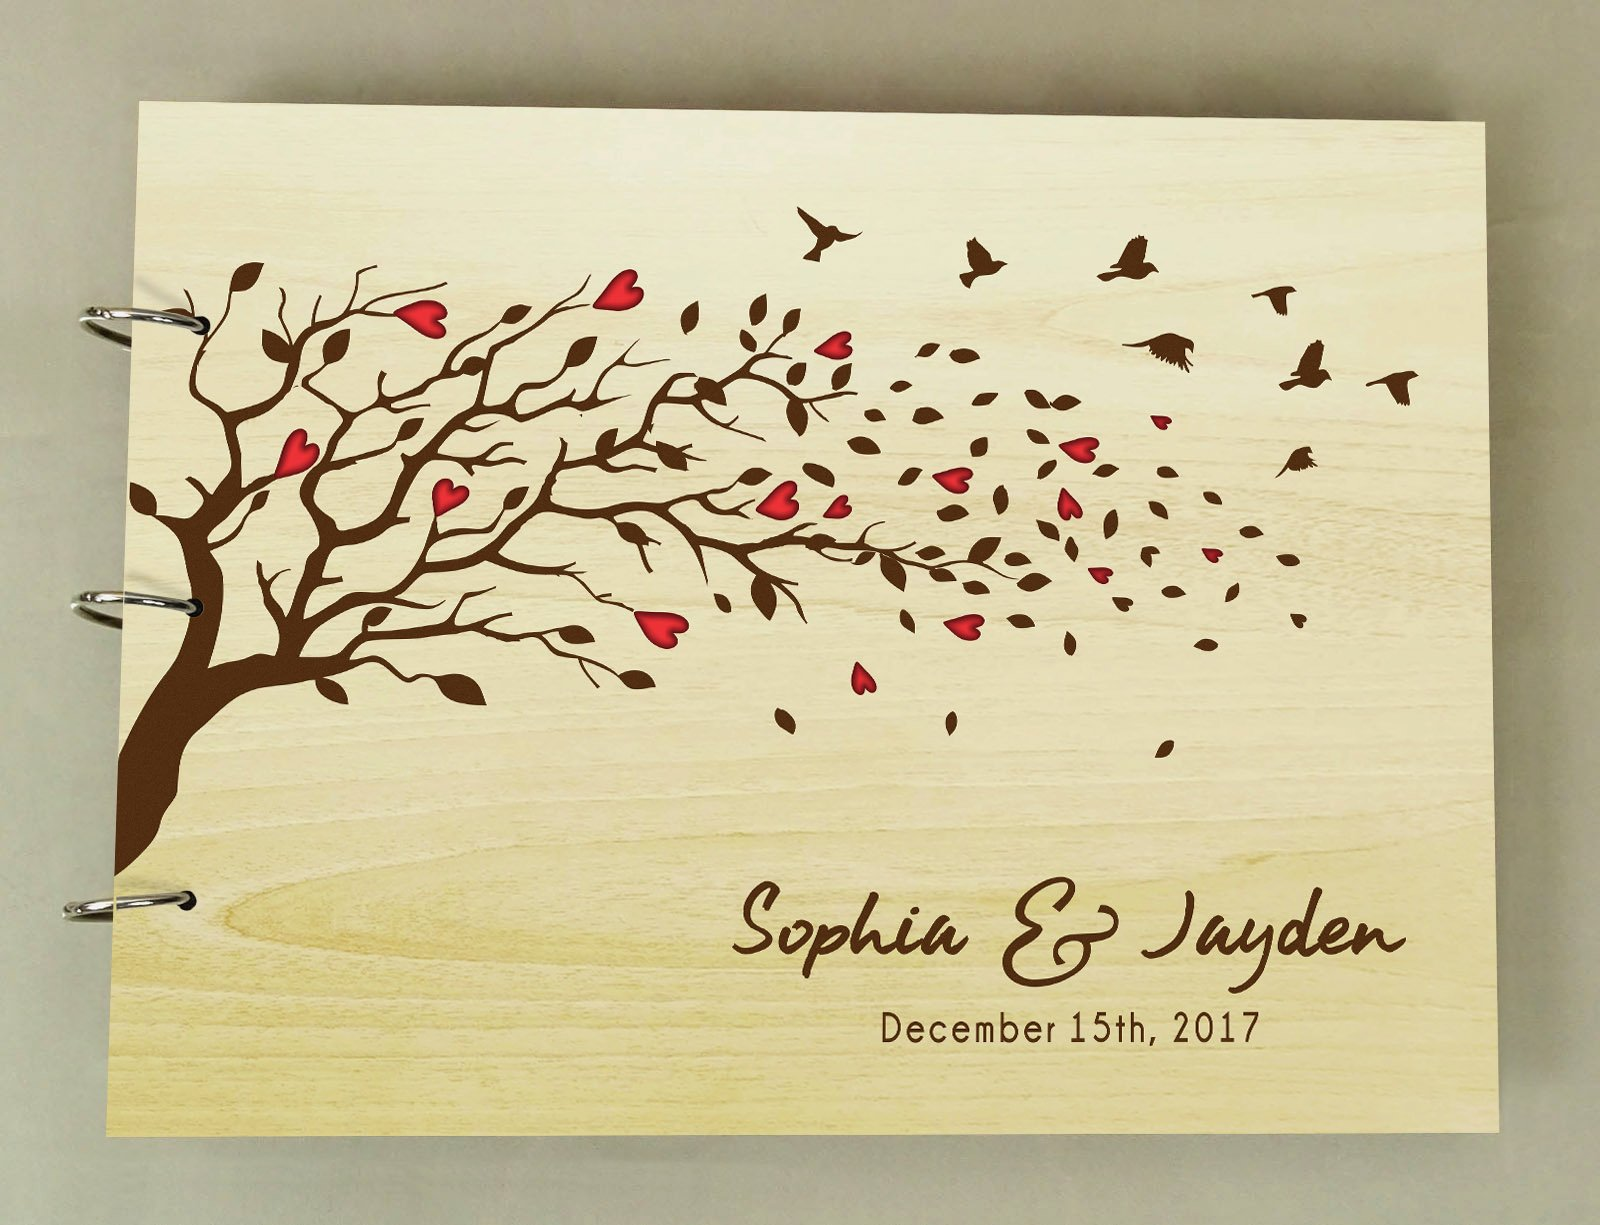 Unique Personalized Wood Engraved Heart Trees And Birds Wedding Guest Book Photo Albums Scrapbook